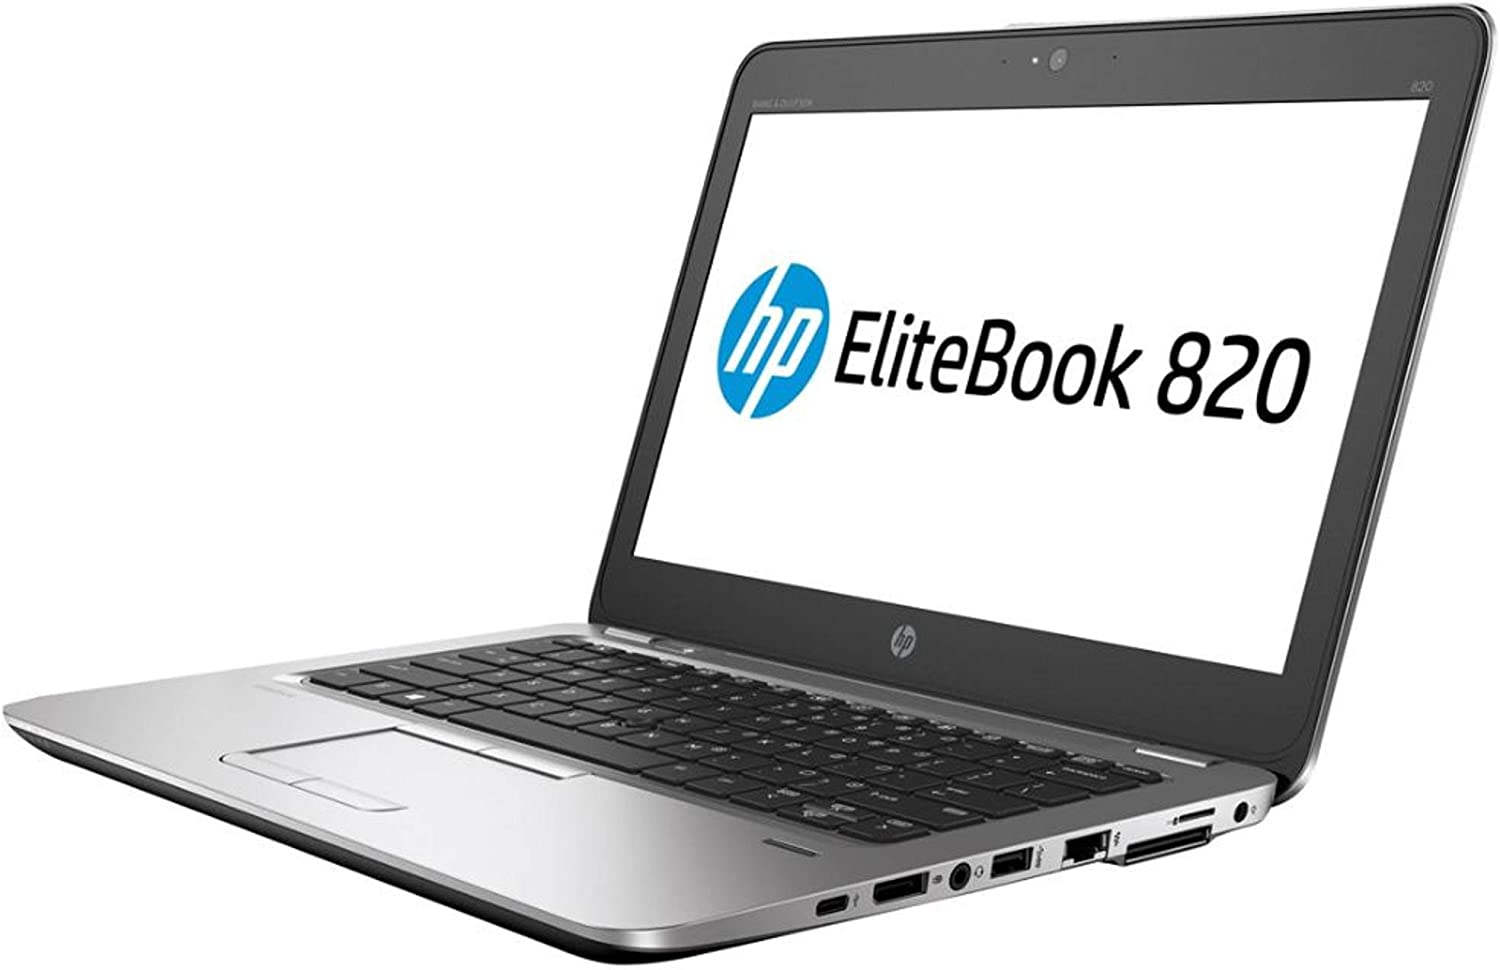 "HP EliteBook 820 G3 Business Laptop - 12.5"" IPS Anti-Glare FHD (1920x1080) 